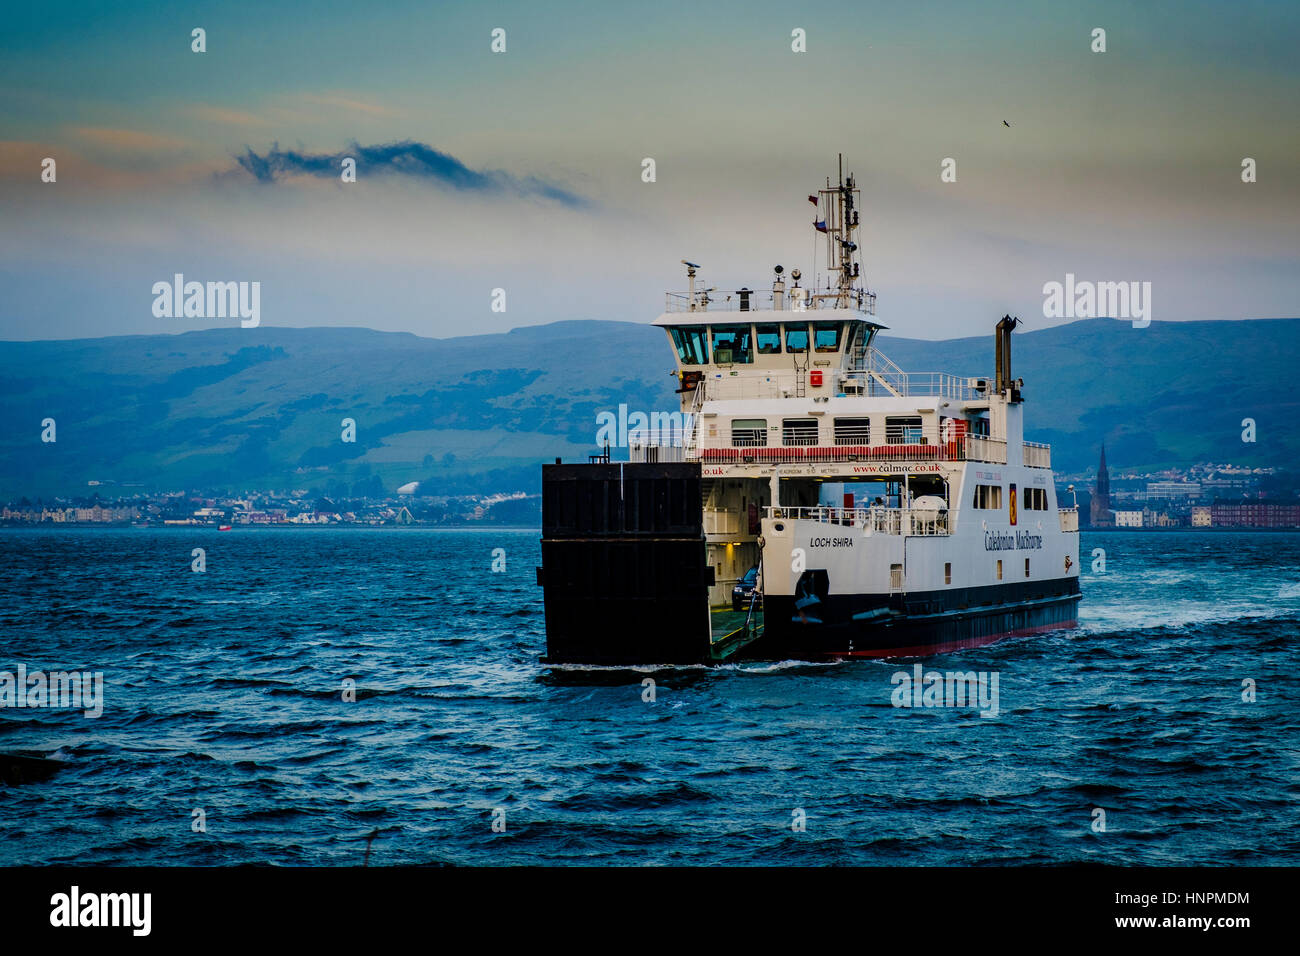 The Calmac ferry 'Loch Shira' making the short crossing from Largs on the Scottish mainland to the island - Stock Image